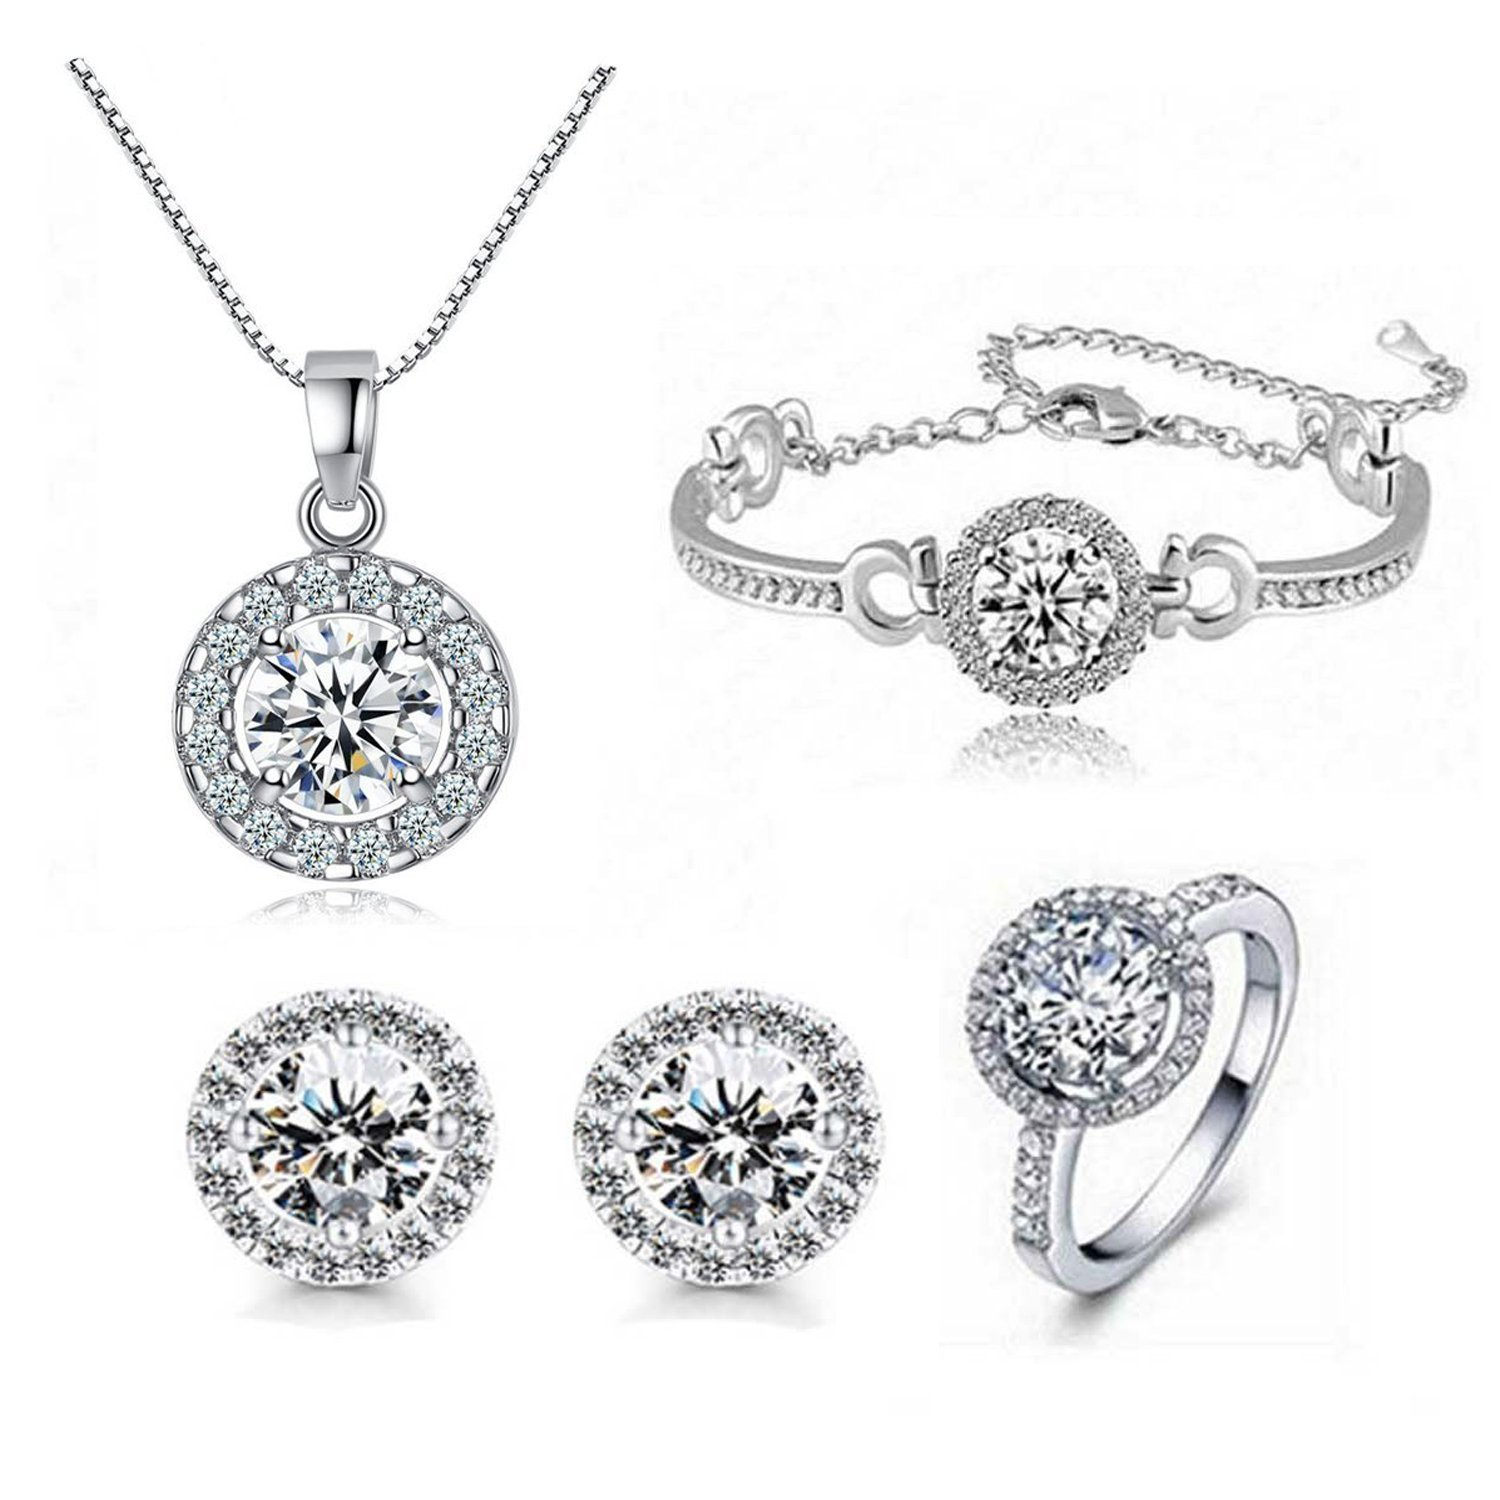 STI-JEWELS Round Cut Cubic Zircon Rings Necklace Earrings Set Silver Plated Crystal Jewelry Sets for Women Girls